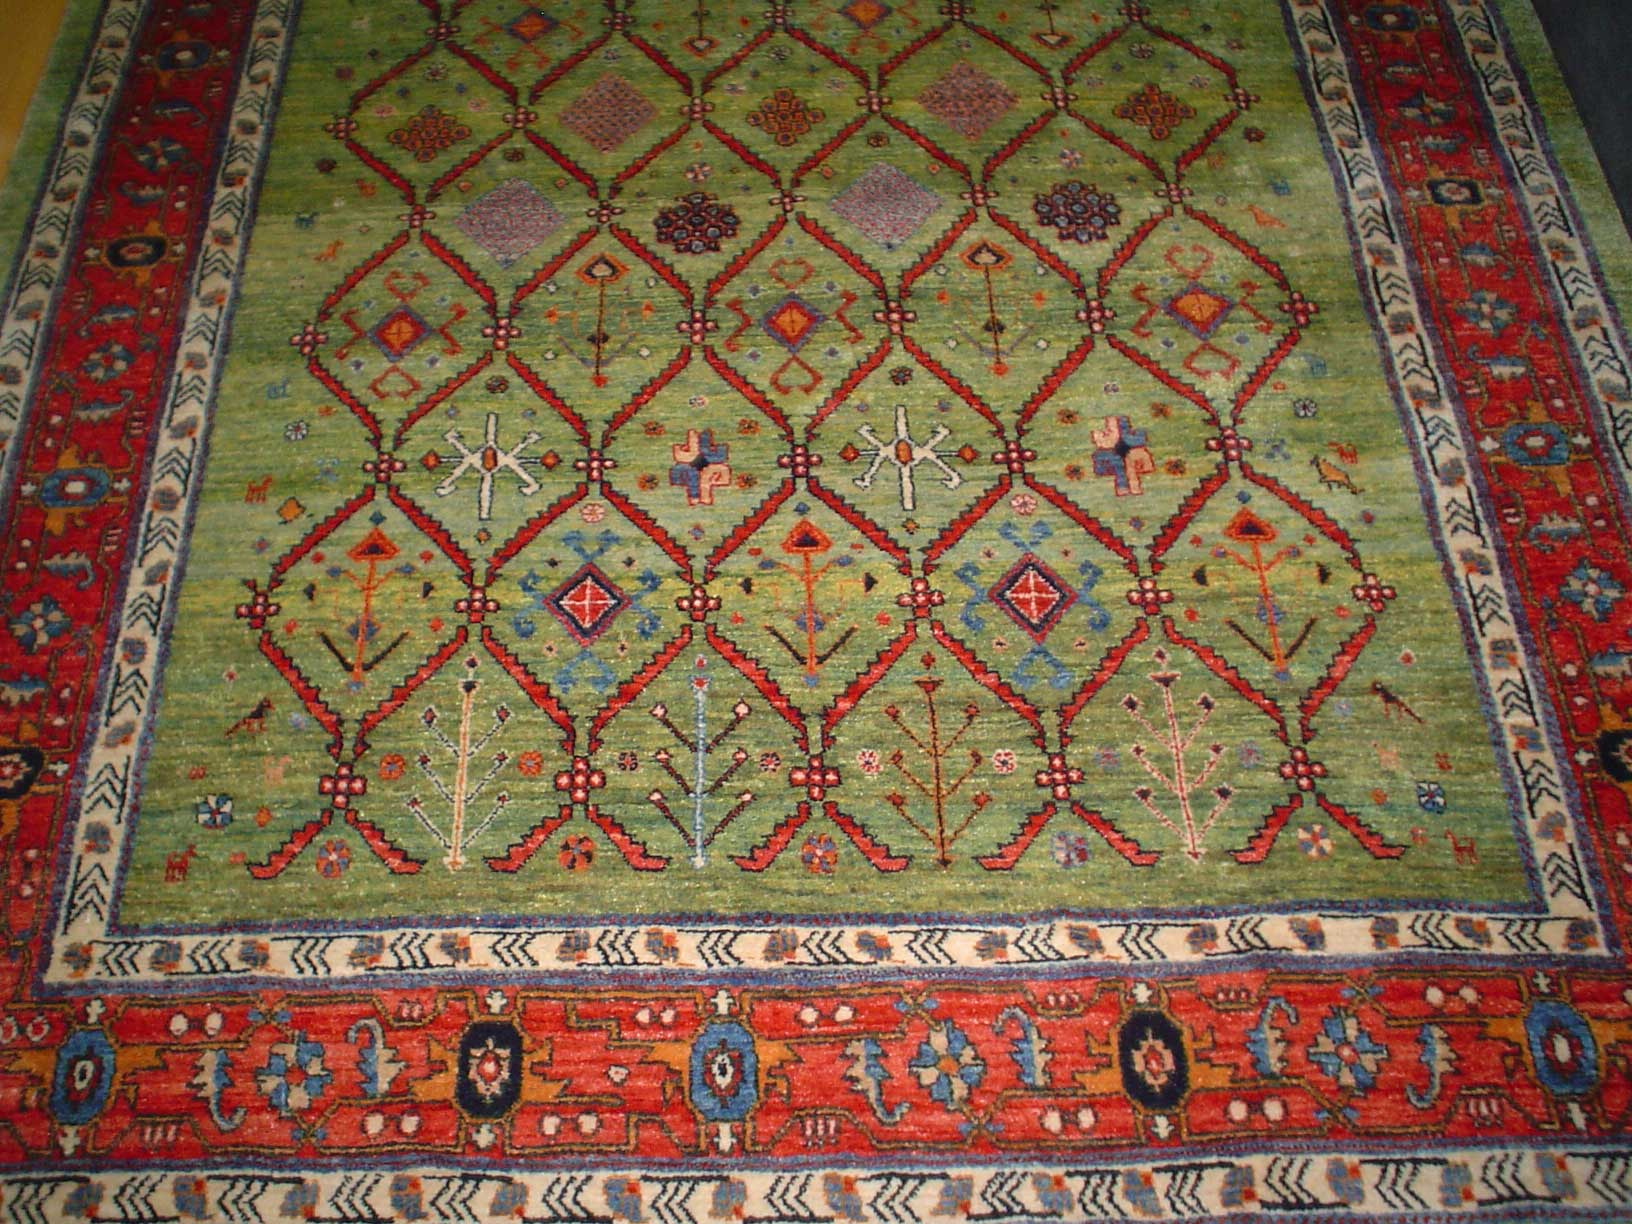 Beautiful 5 x 7 Persian Qashqai rug in light green. Sold.